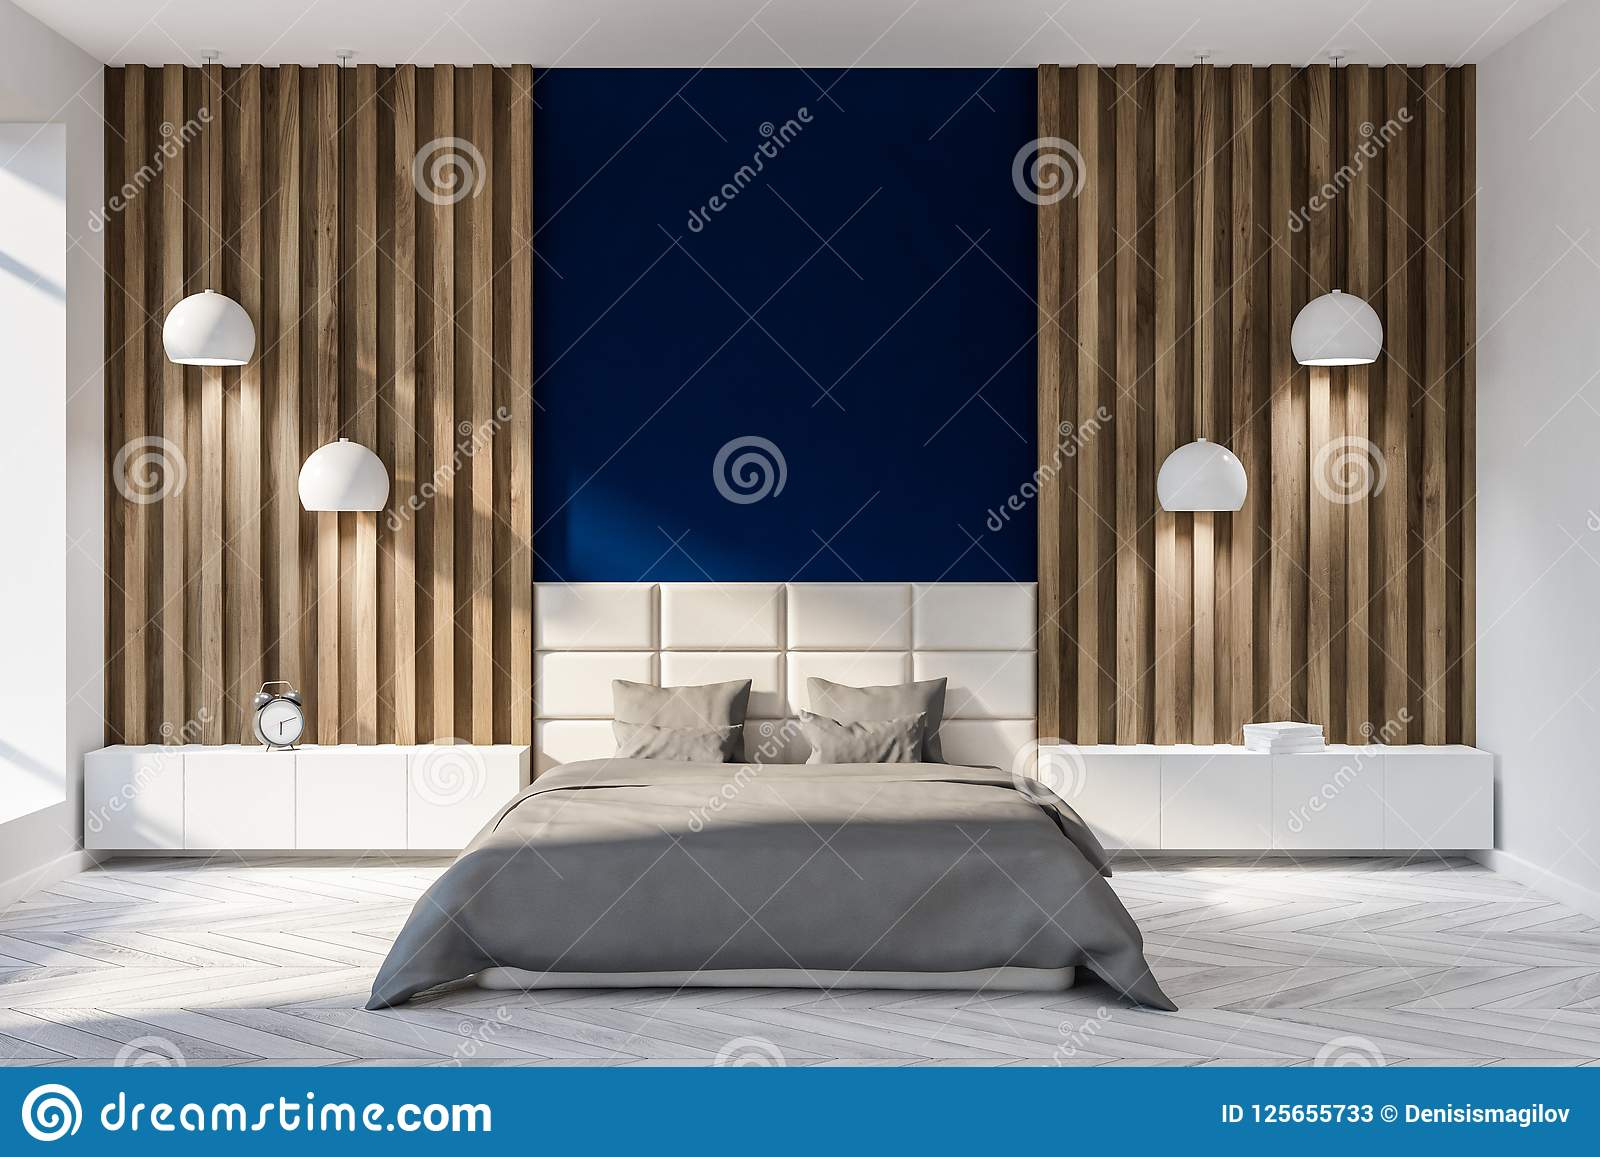 Blue And Wood Bedroom Interior Double Bed Stock Illustration Illustration Of Decor Bedroom 125655733